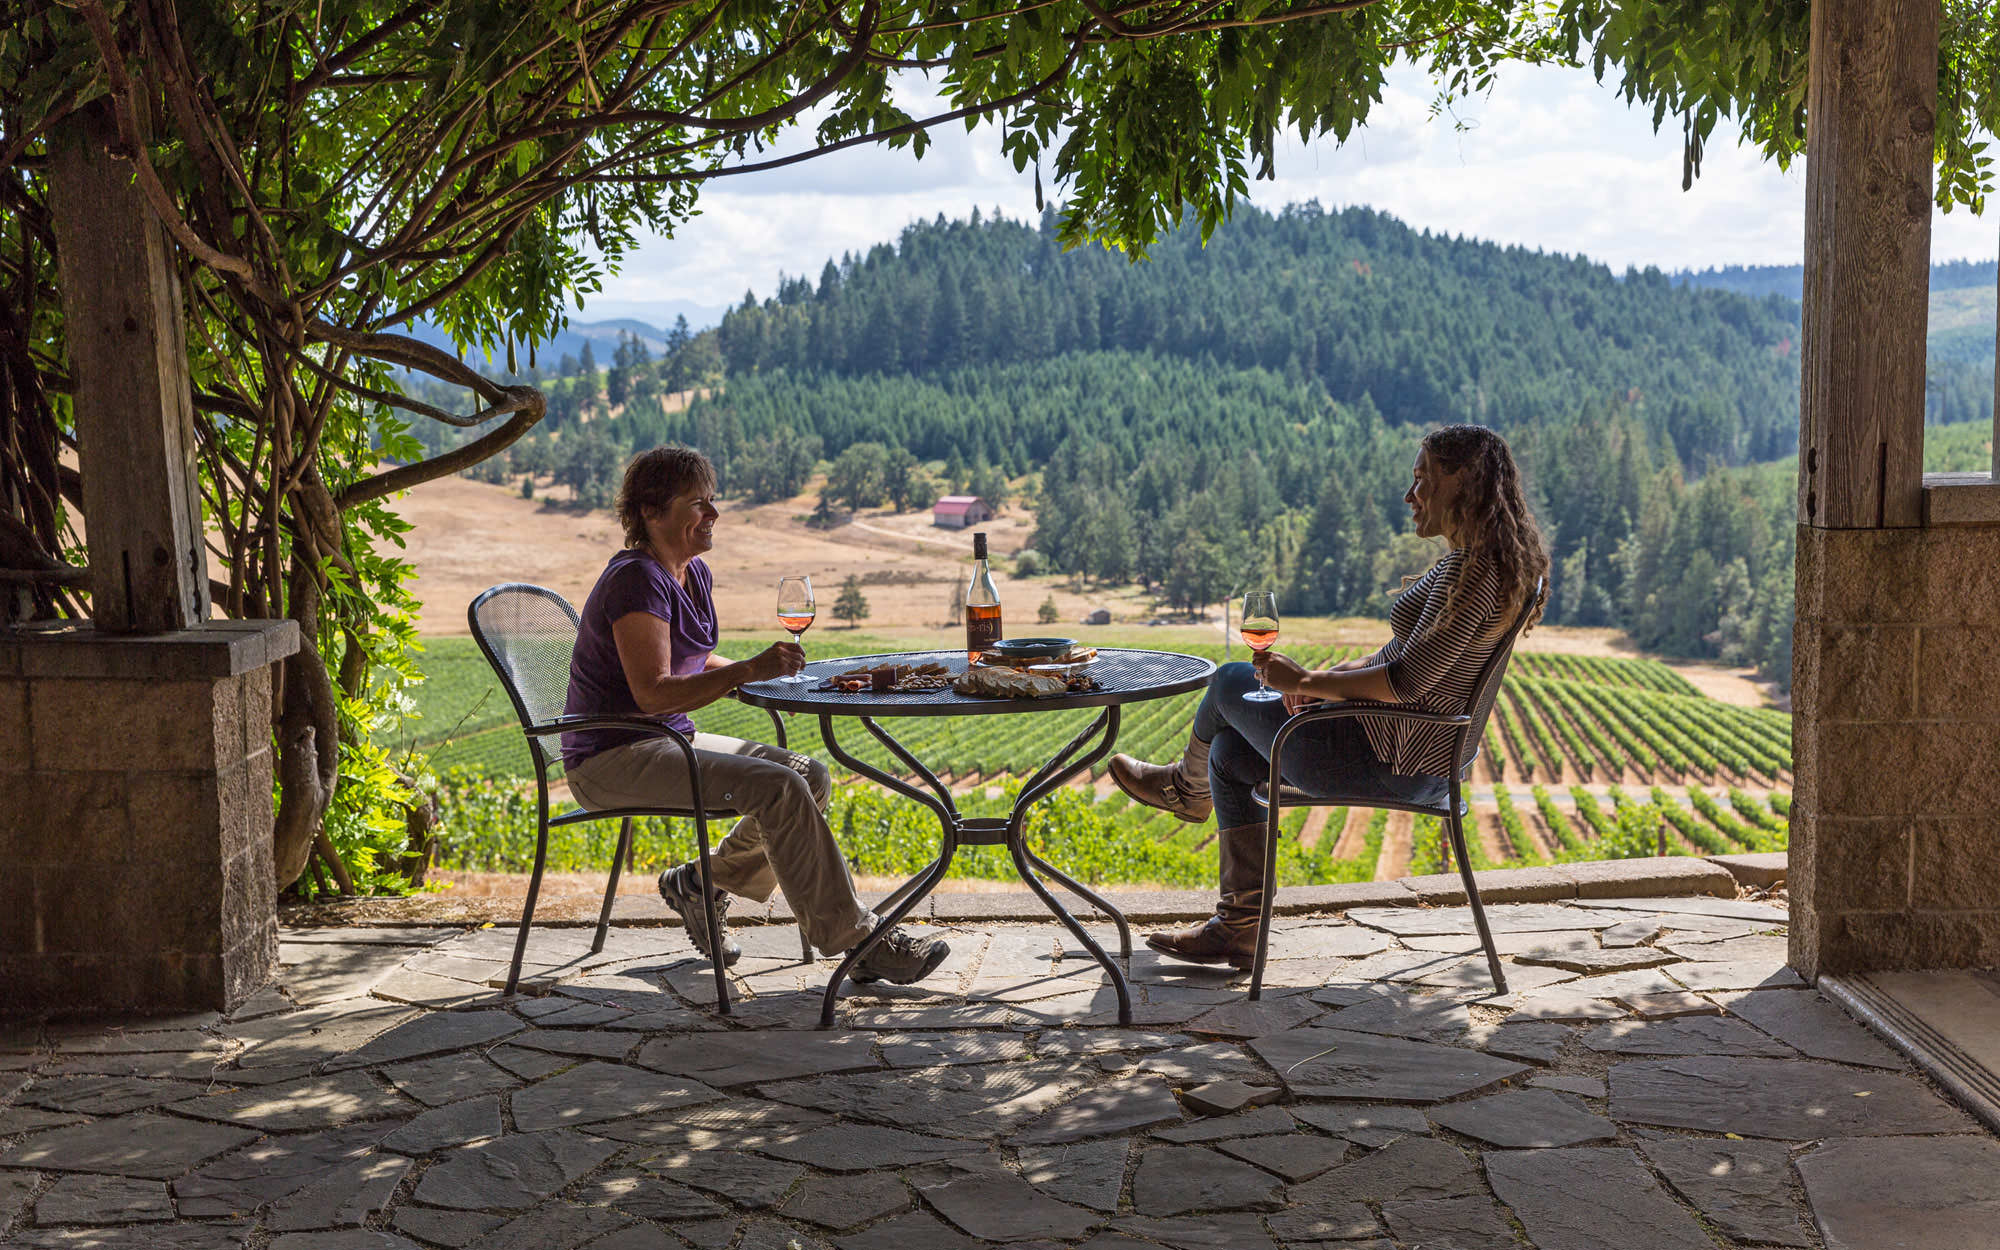 Two women enjoy a wine tasting and charcuterie board in a shaded stone patio overlooking Iris Vineyards.